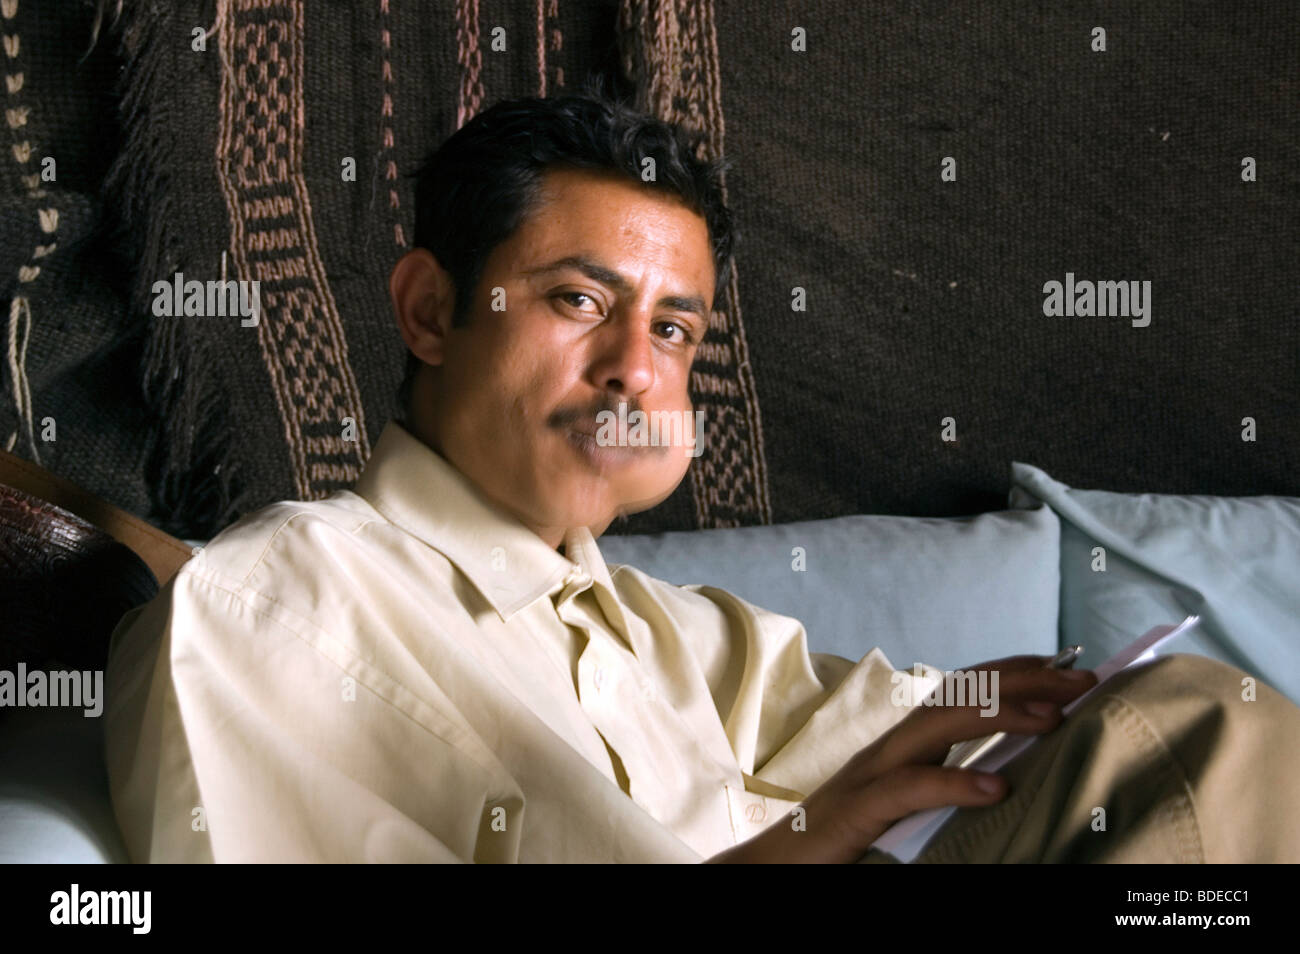 Portrait of a Yemeni man chewing khat or qat - a leafy stimulant and legal drug - in his home in Sanaa, Yemen. - Stock Image